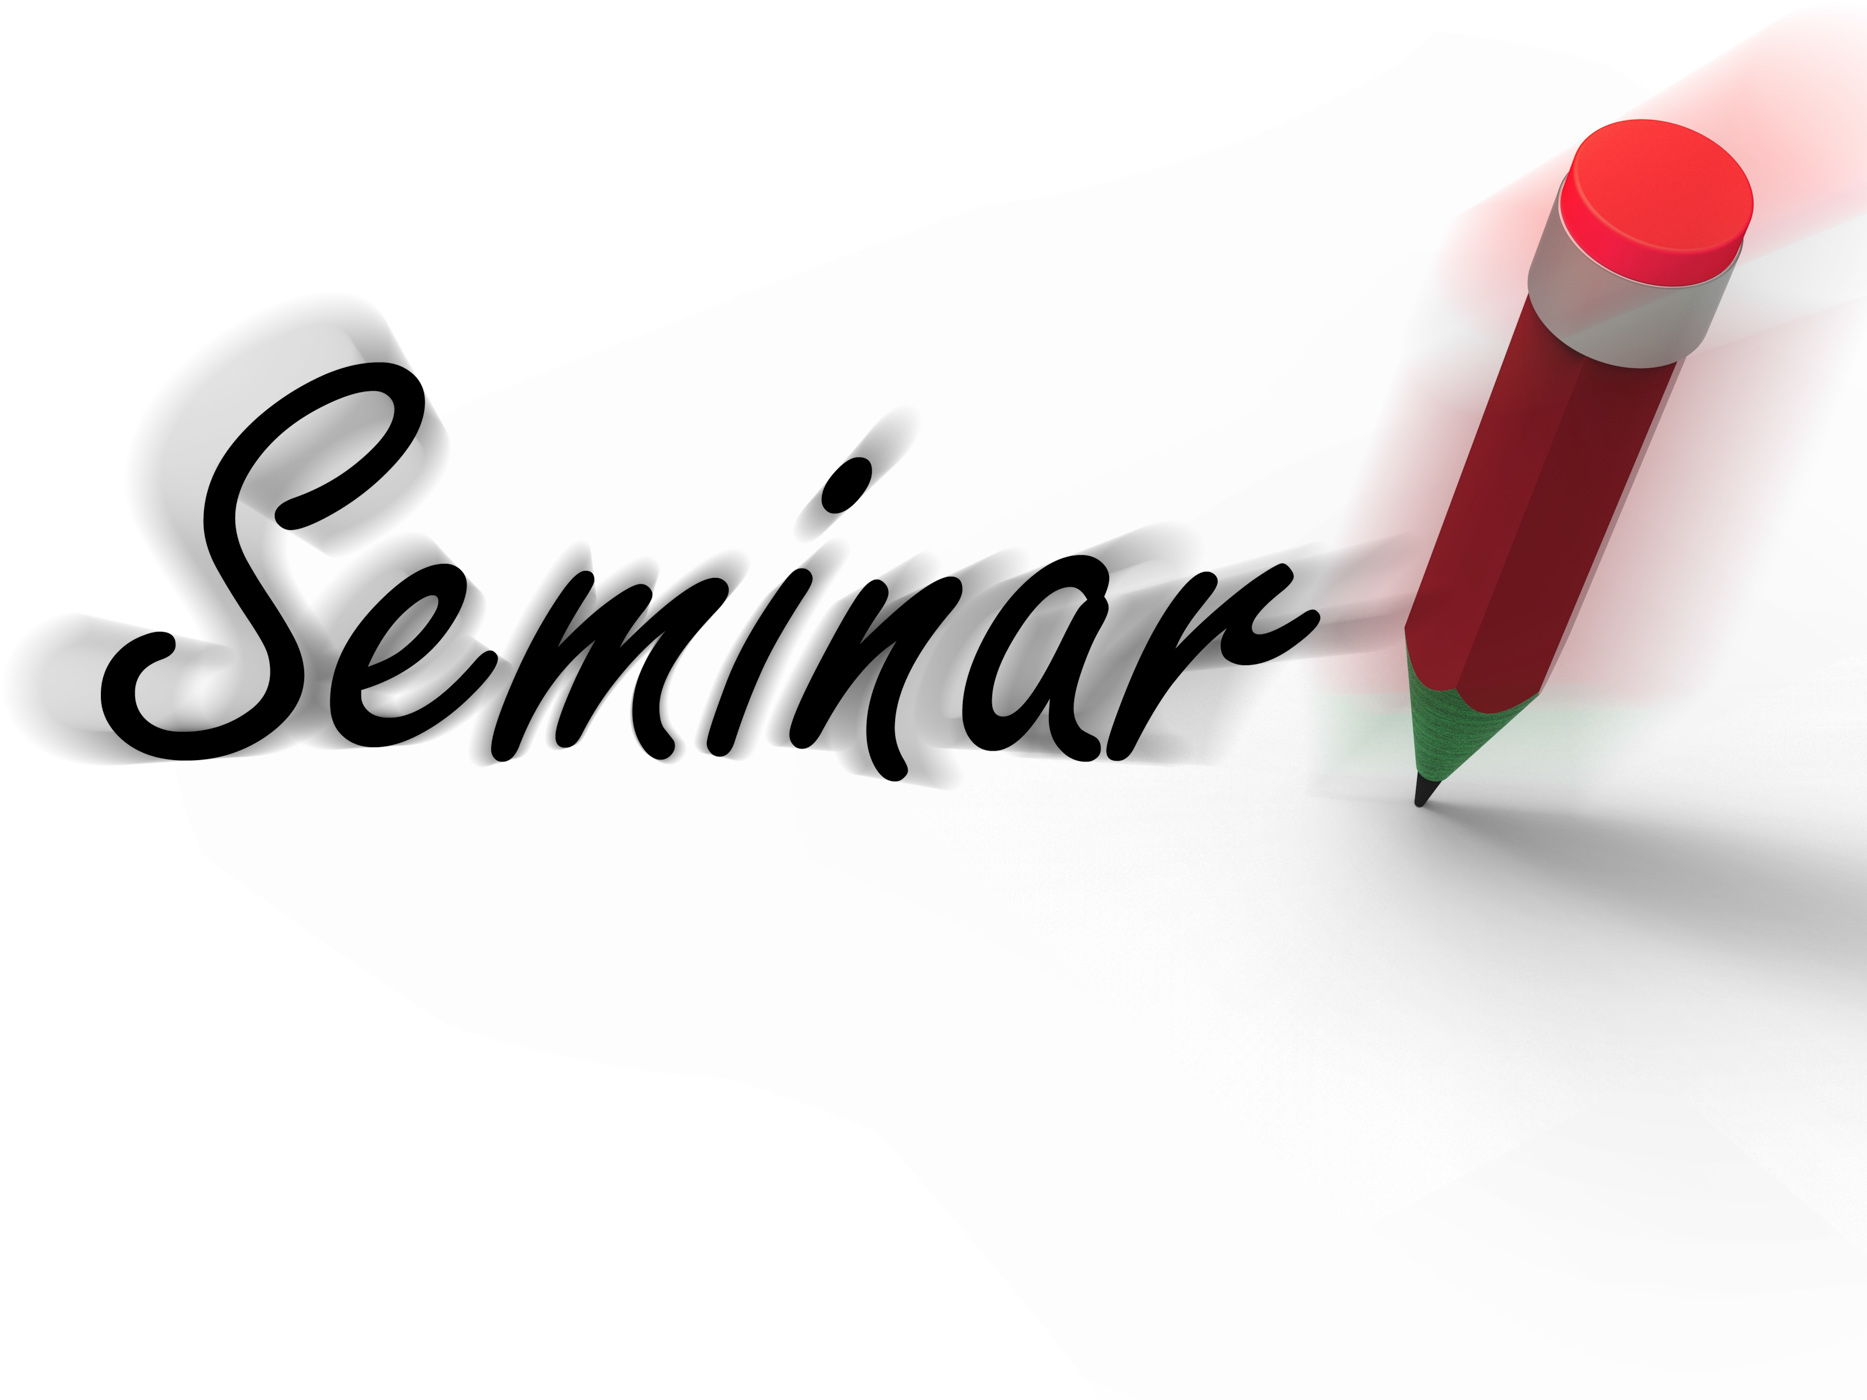 Seminar with pencil displays written appointment for a business confer photo